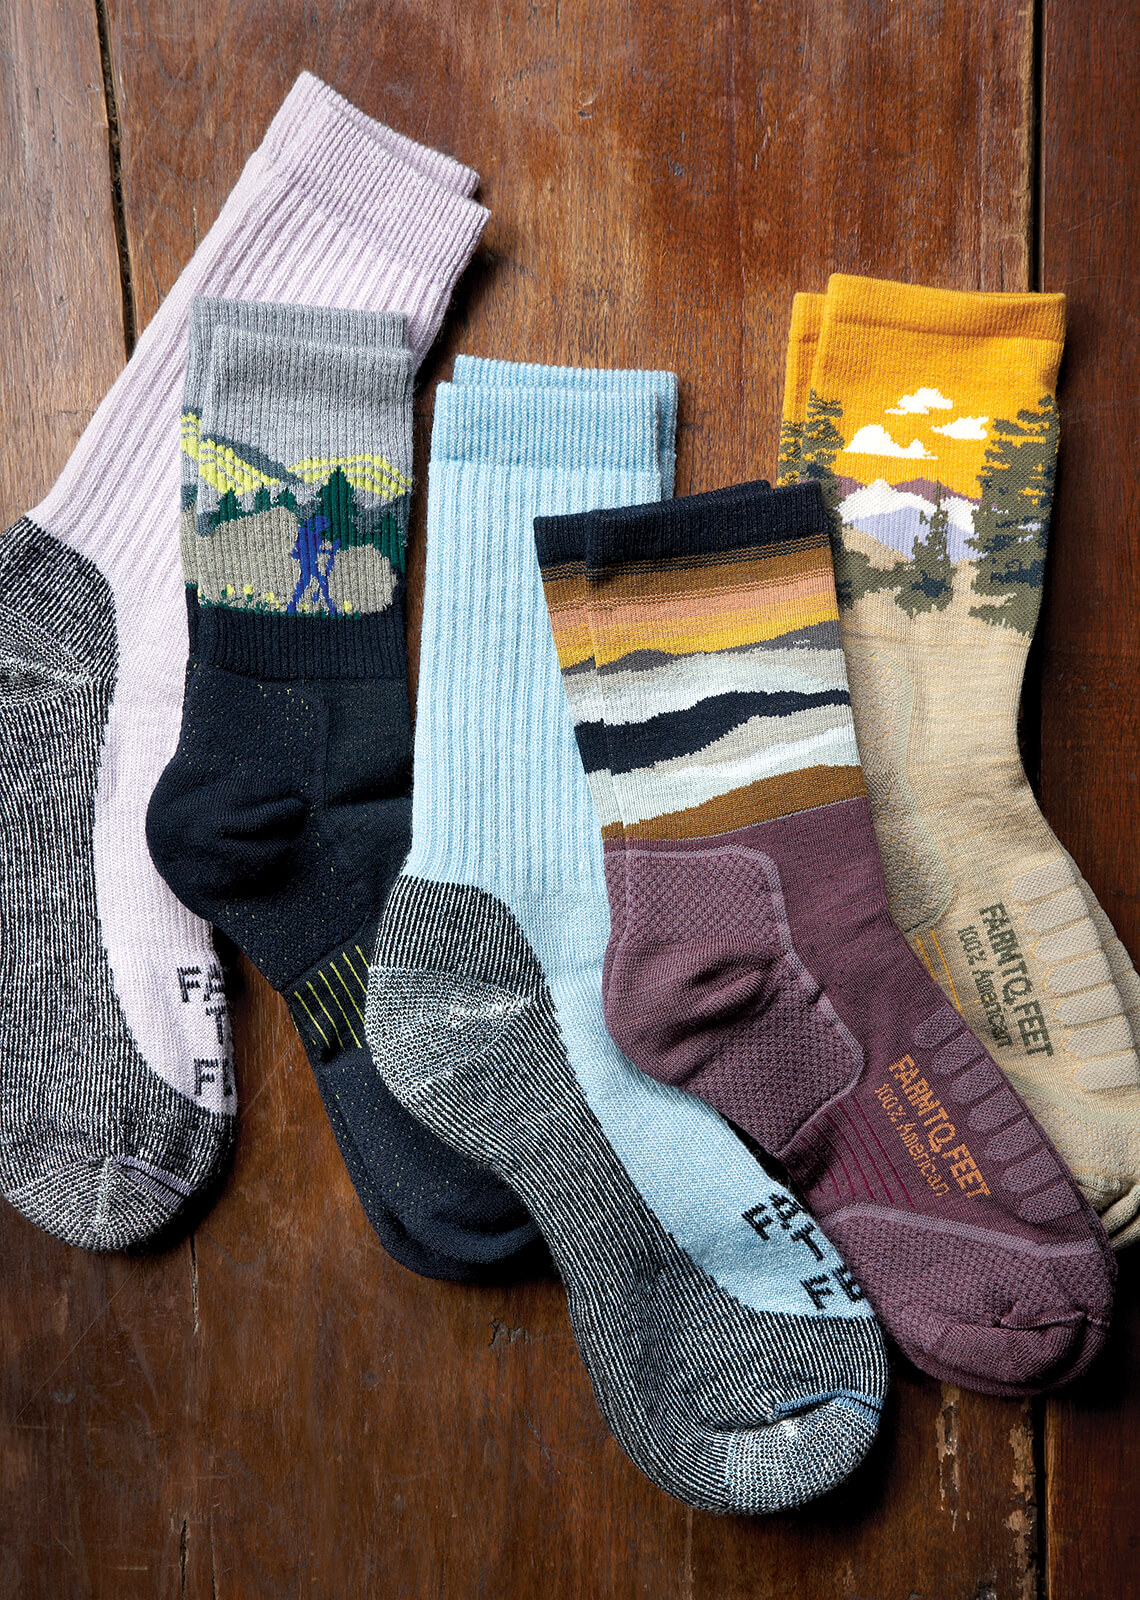 Various socks made from different companies in North Carolina.